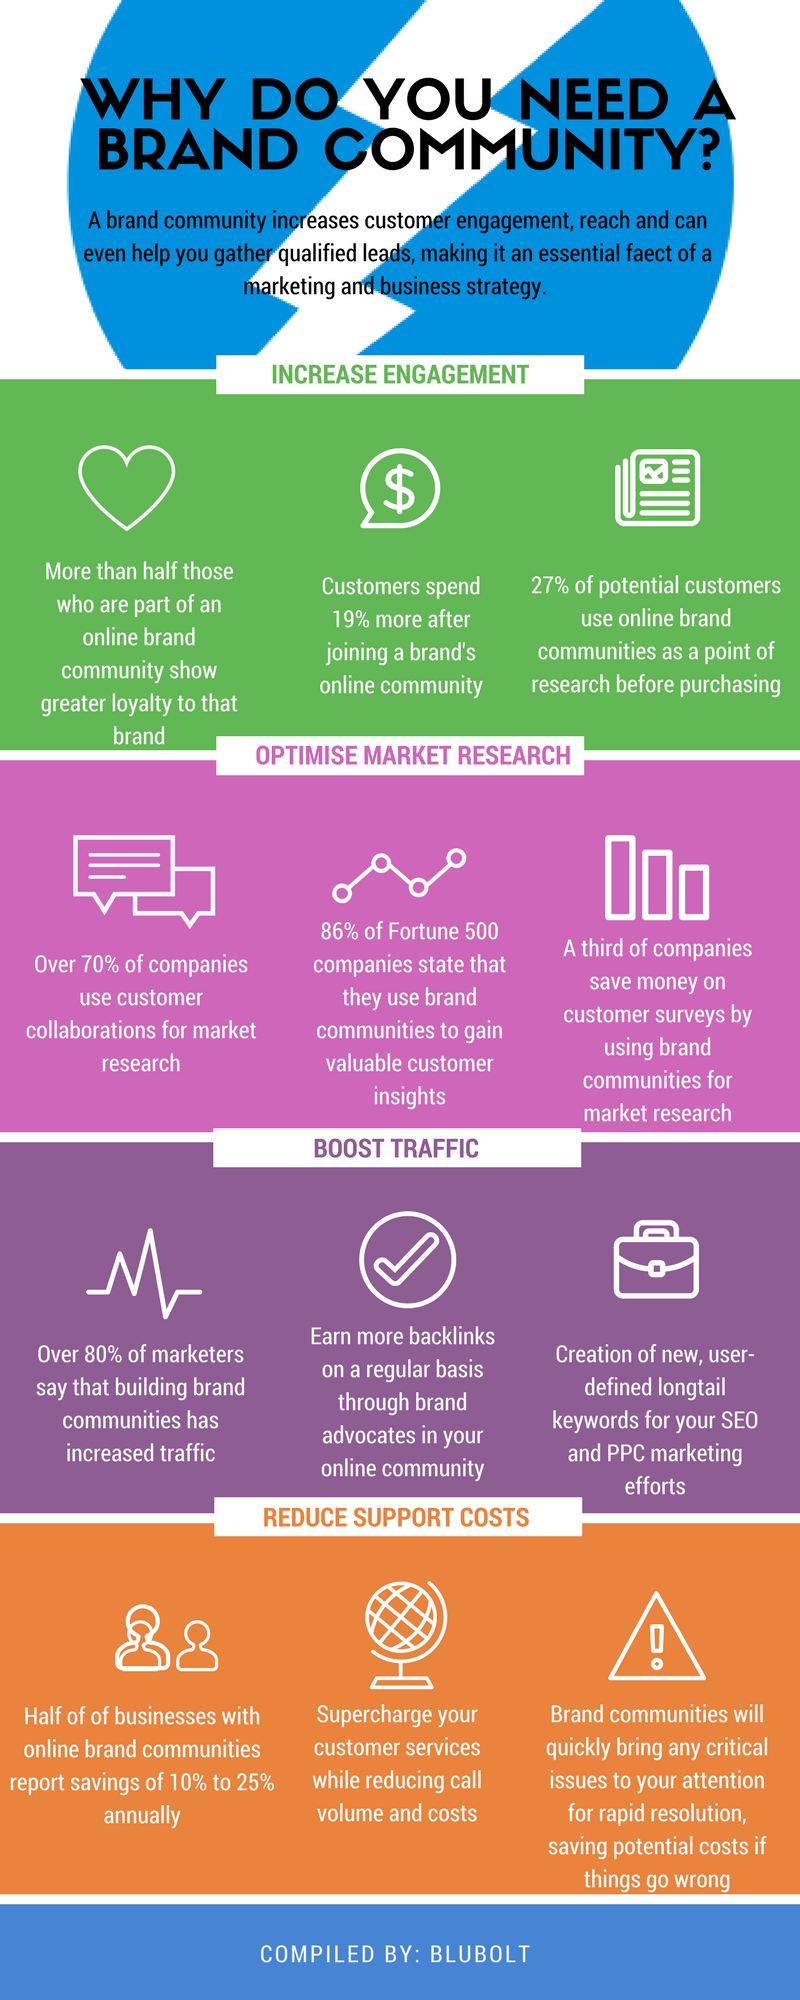 An infographic showing facts and statistics to highlight the importance of building an online brand community.